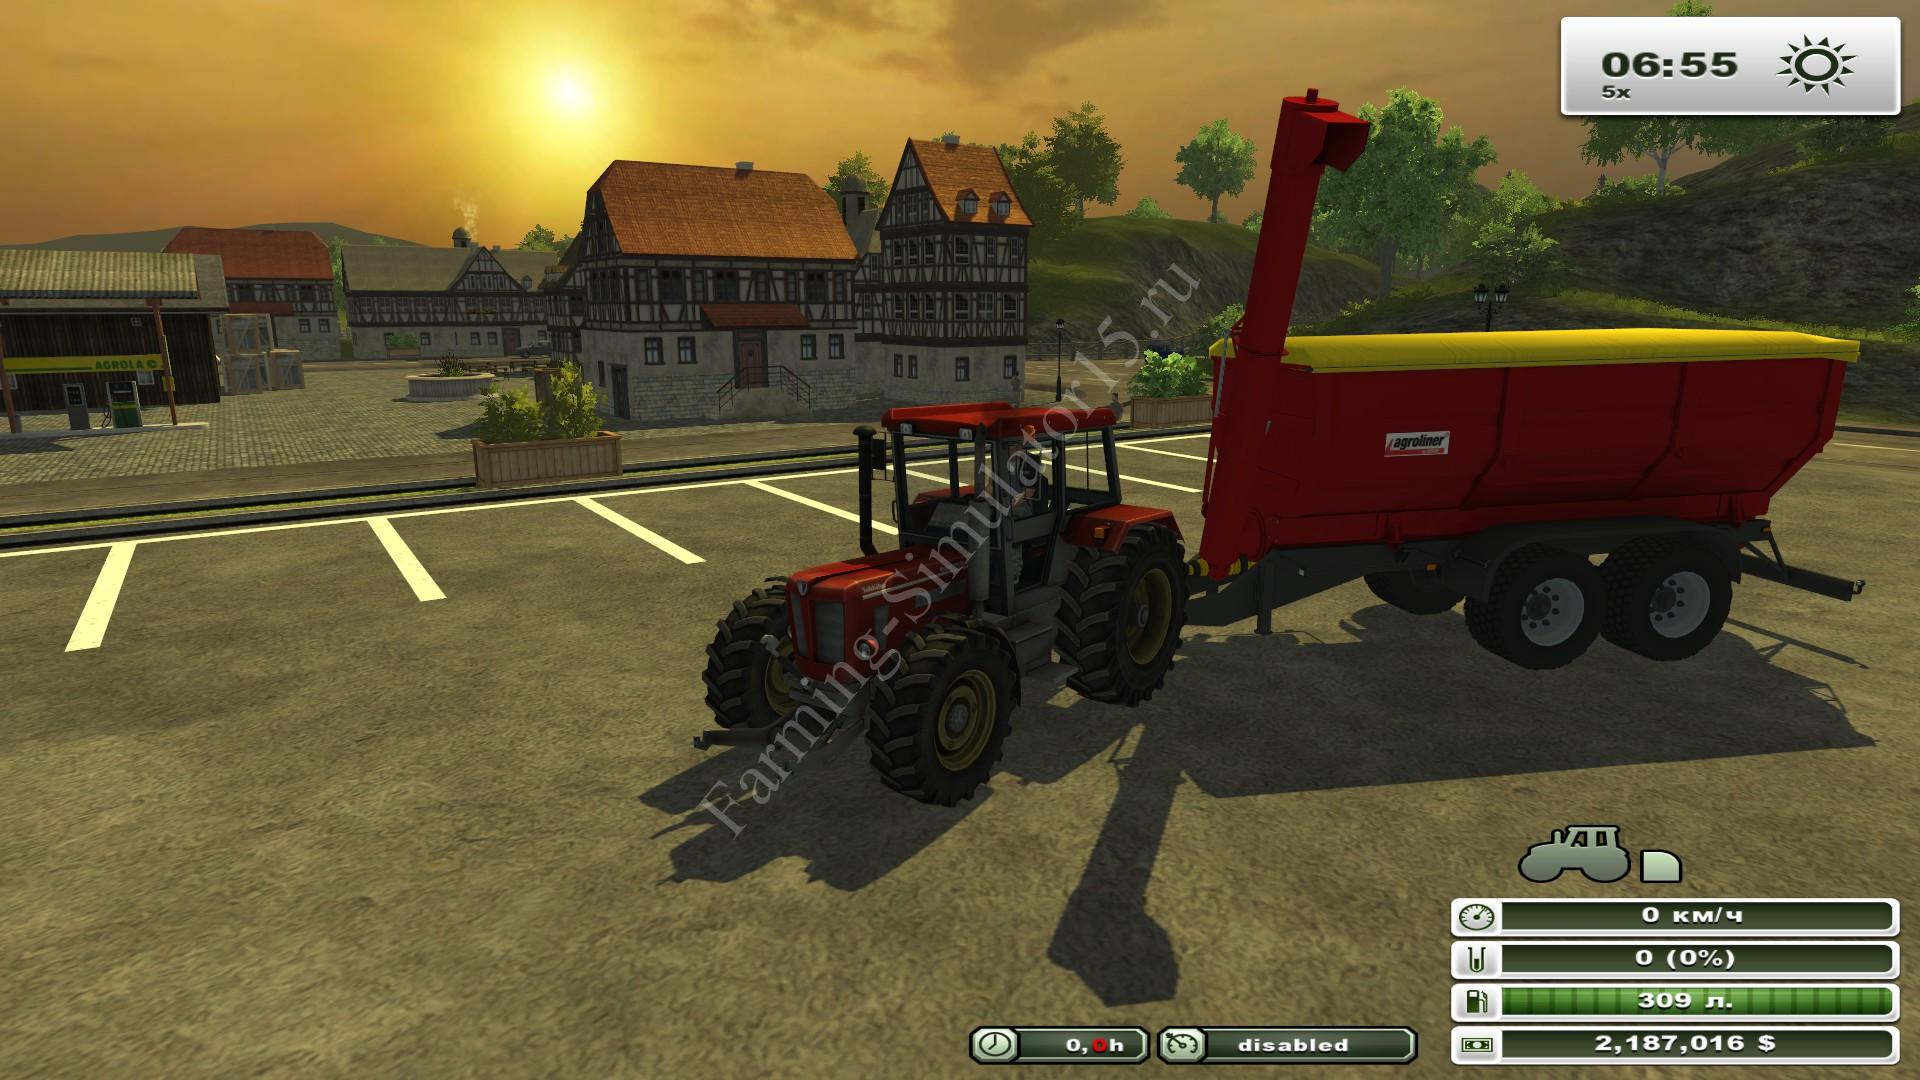 Agroliner TUW 20 v 1.0 - мод двуосного прицепа Farming Simulator 13, Farming Simulator 2013